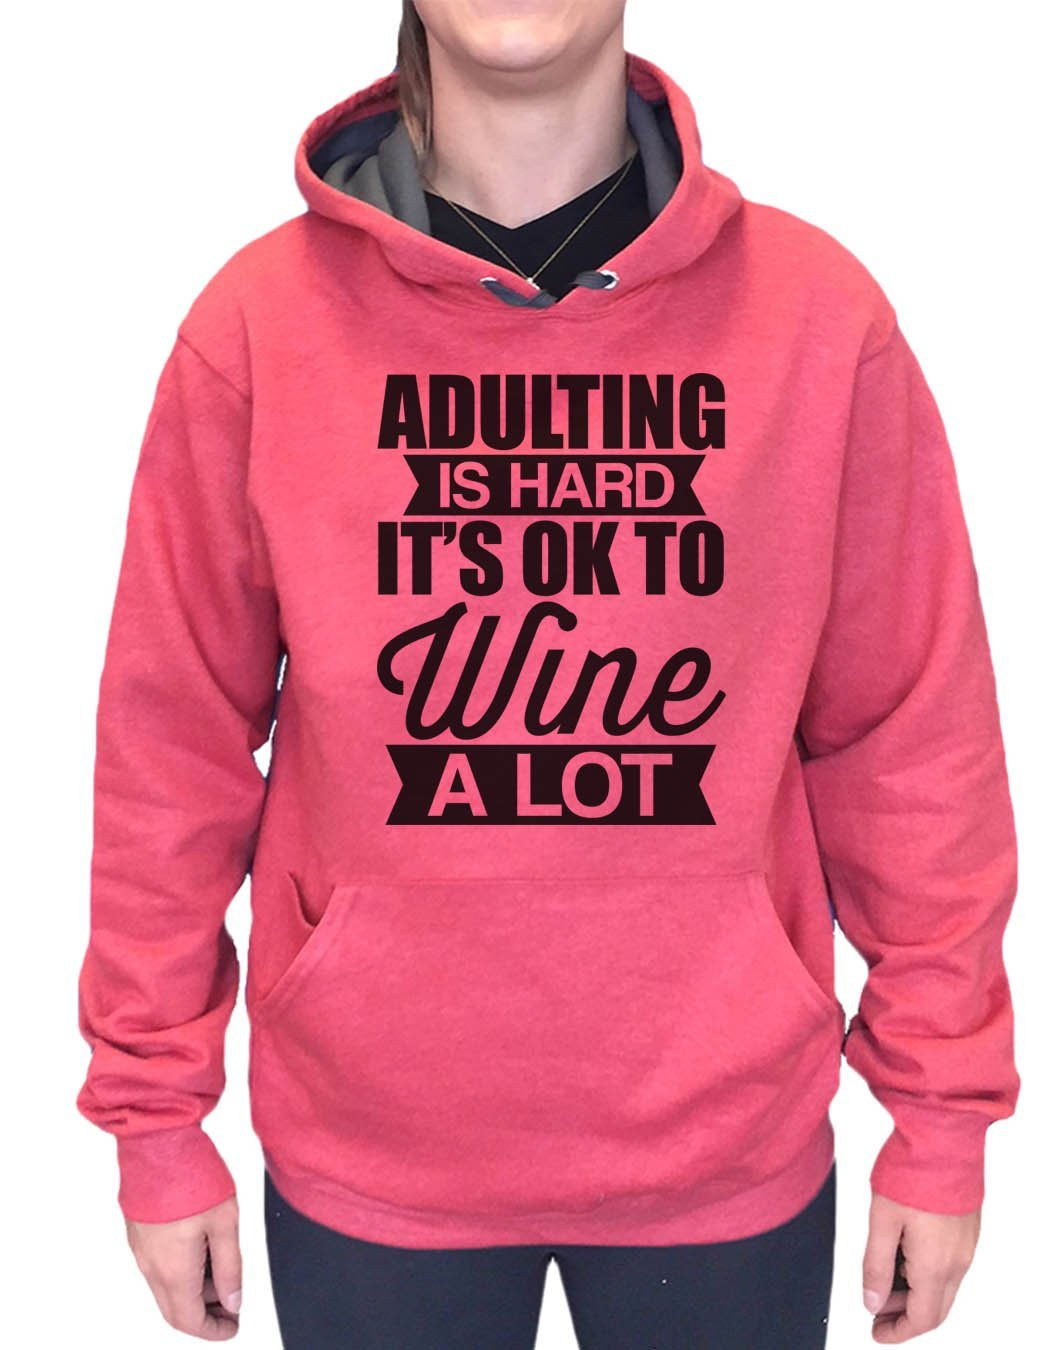 UNISEX HOODIE - Adulting Is Hard It's Ok To Wine A Lot - FUNNY MENS AND WOMENS HOODED SWEATSHIRTS - 2129 Funny Shirt Small / Cranberry Red